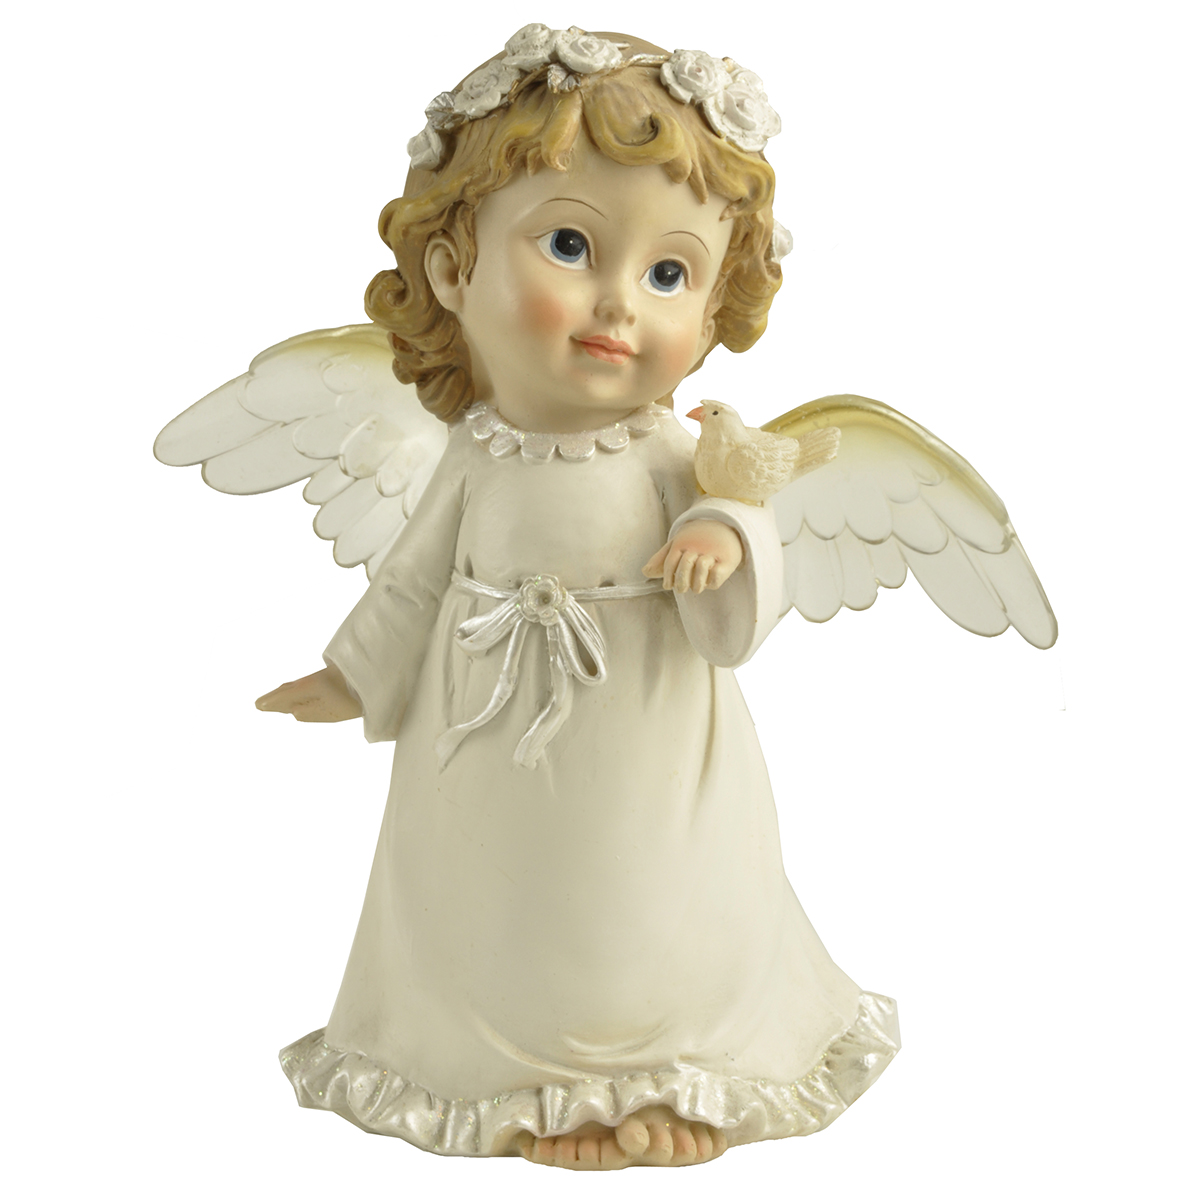 home decor angel wings figurines unique for ornaments-1